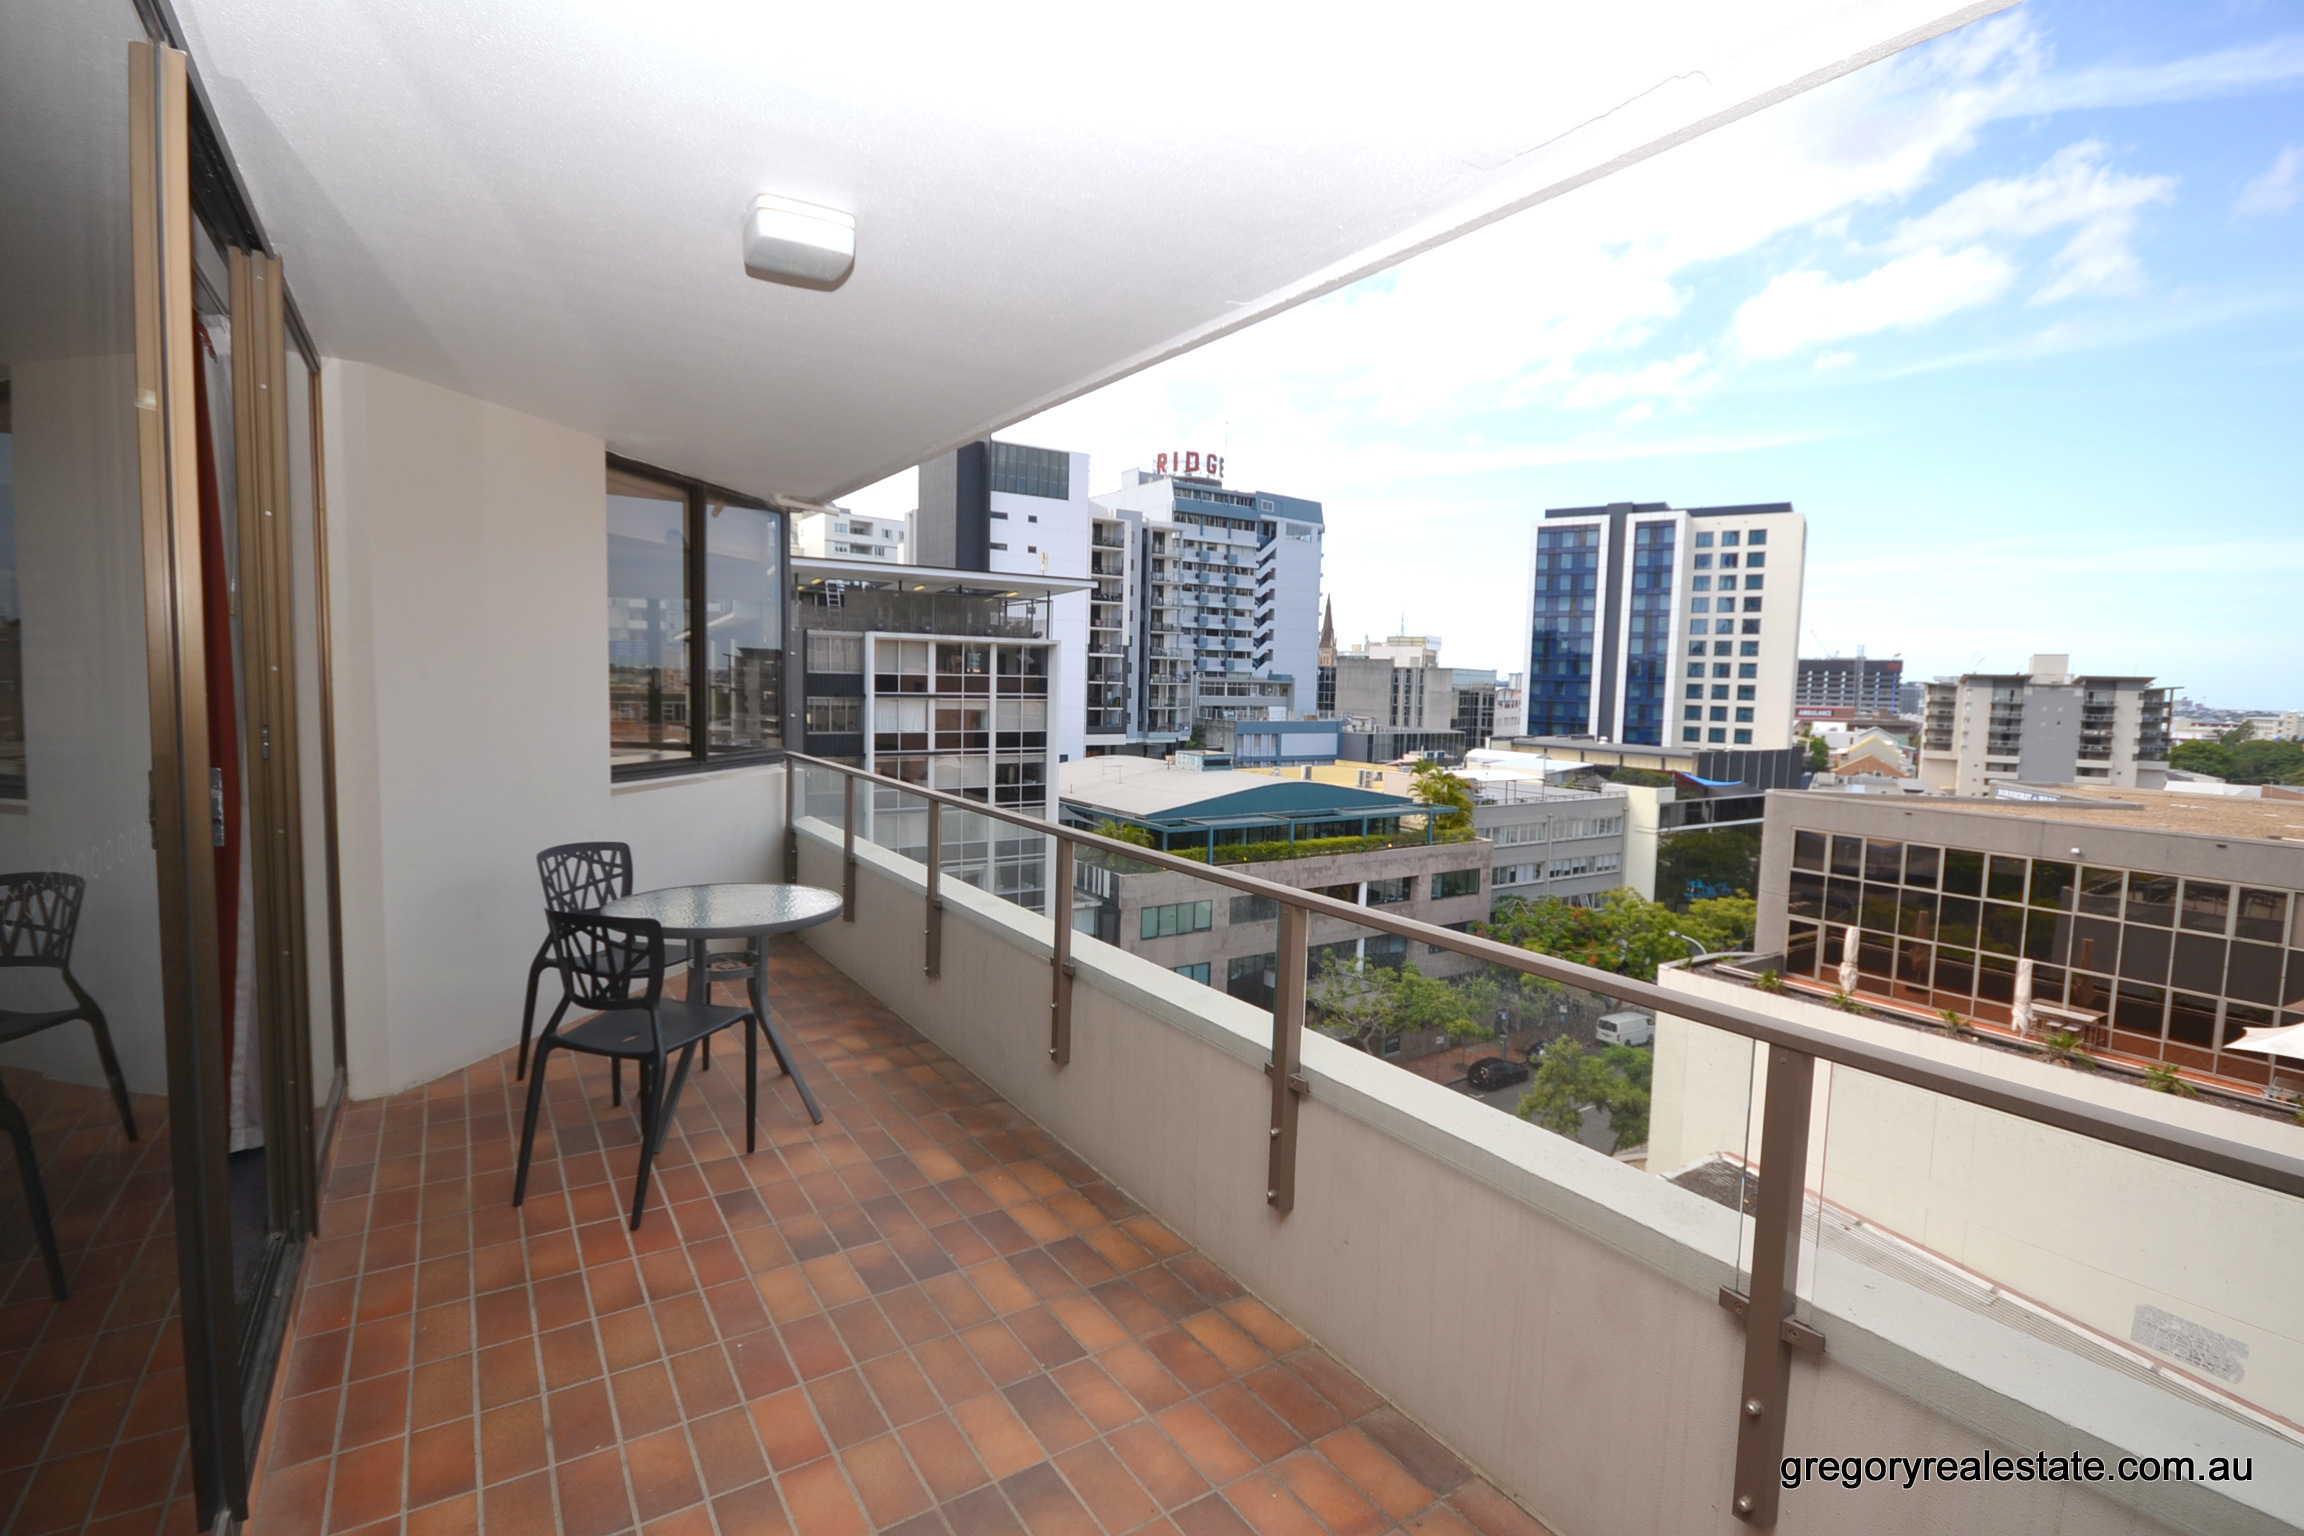 703/35 Astor Terrace SPRING HILL